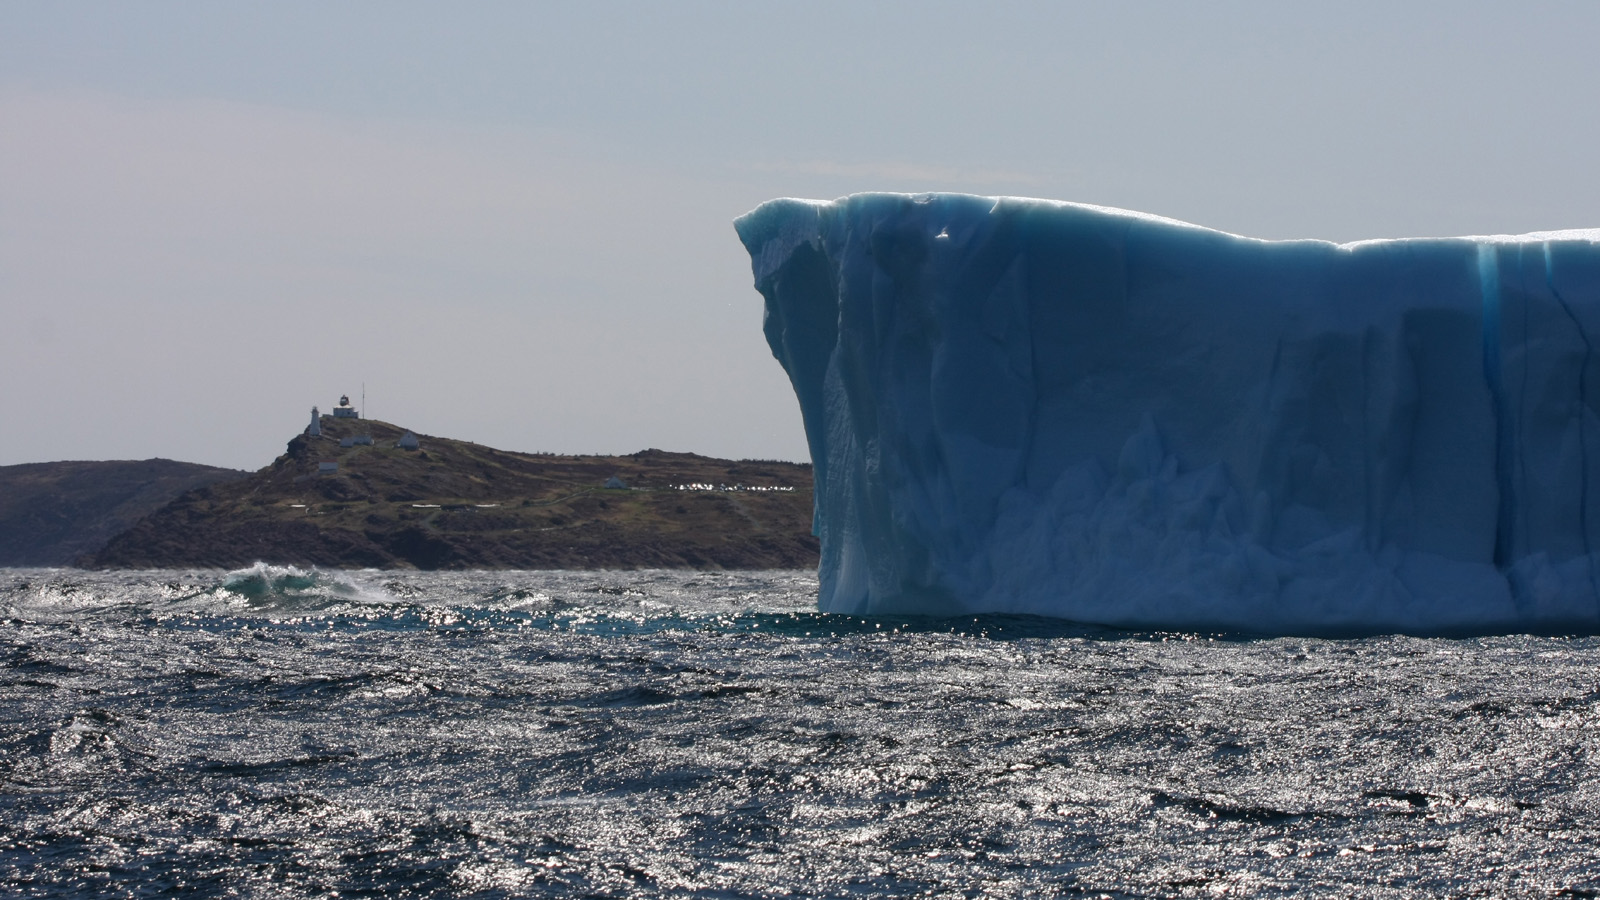 One of the perks flying into St. John's is the chance to see icebergs. This one is sitting adjacent to Cape Spear, North America'a most eastern point.